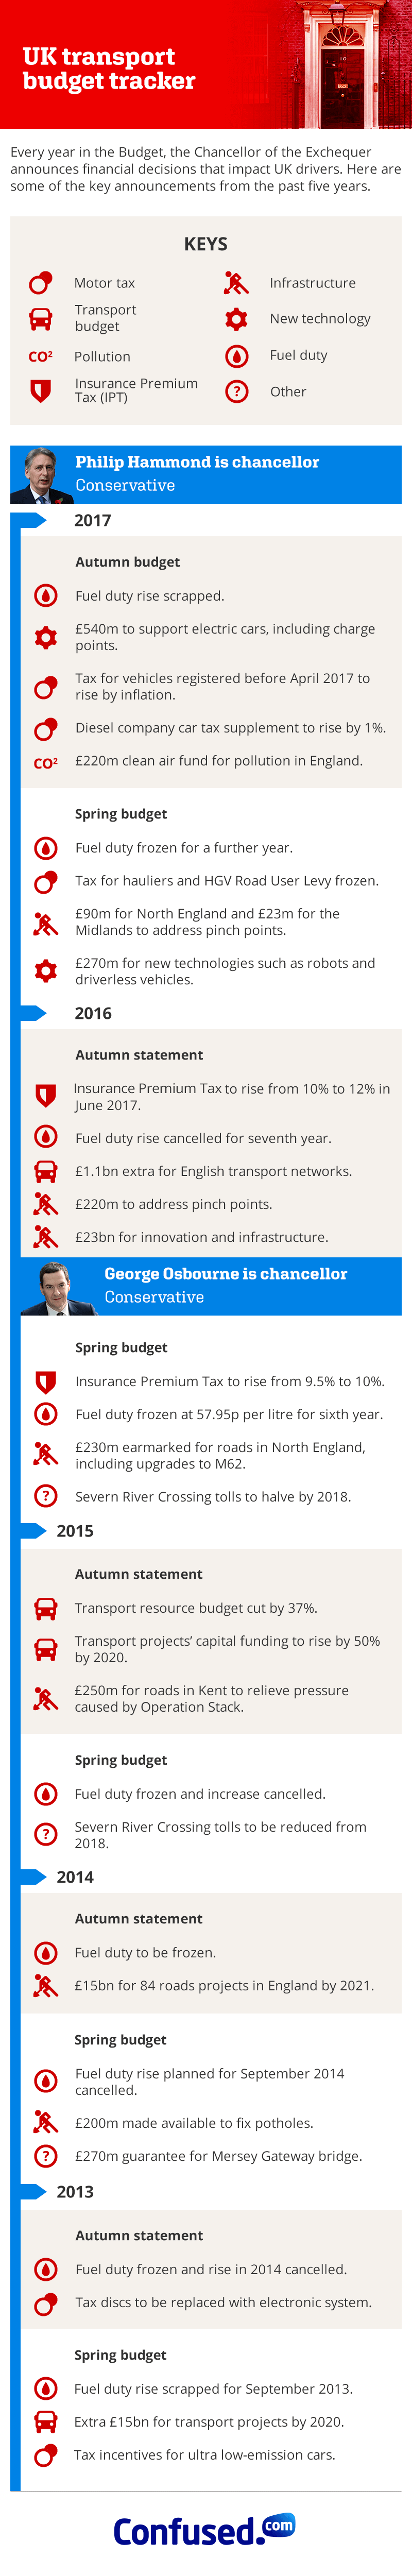 UK Transport budget tracker